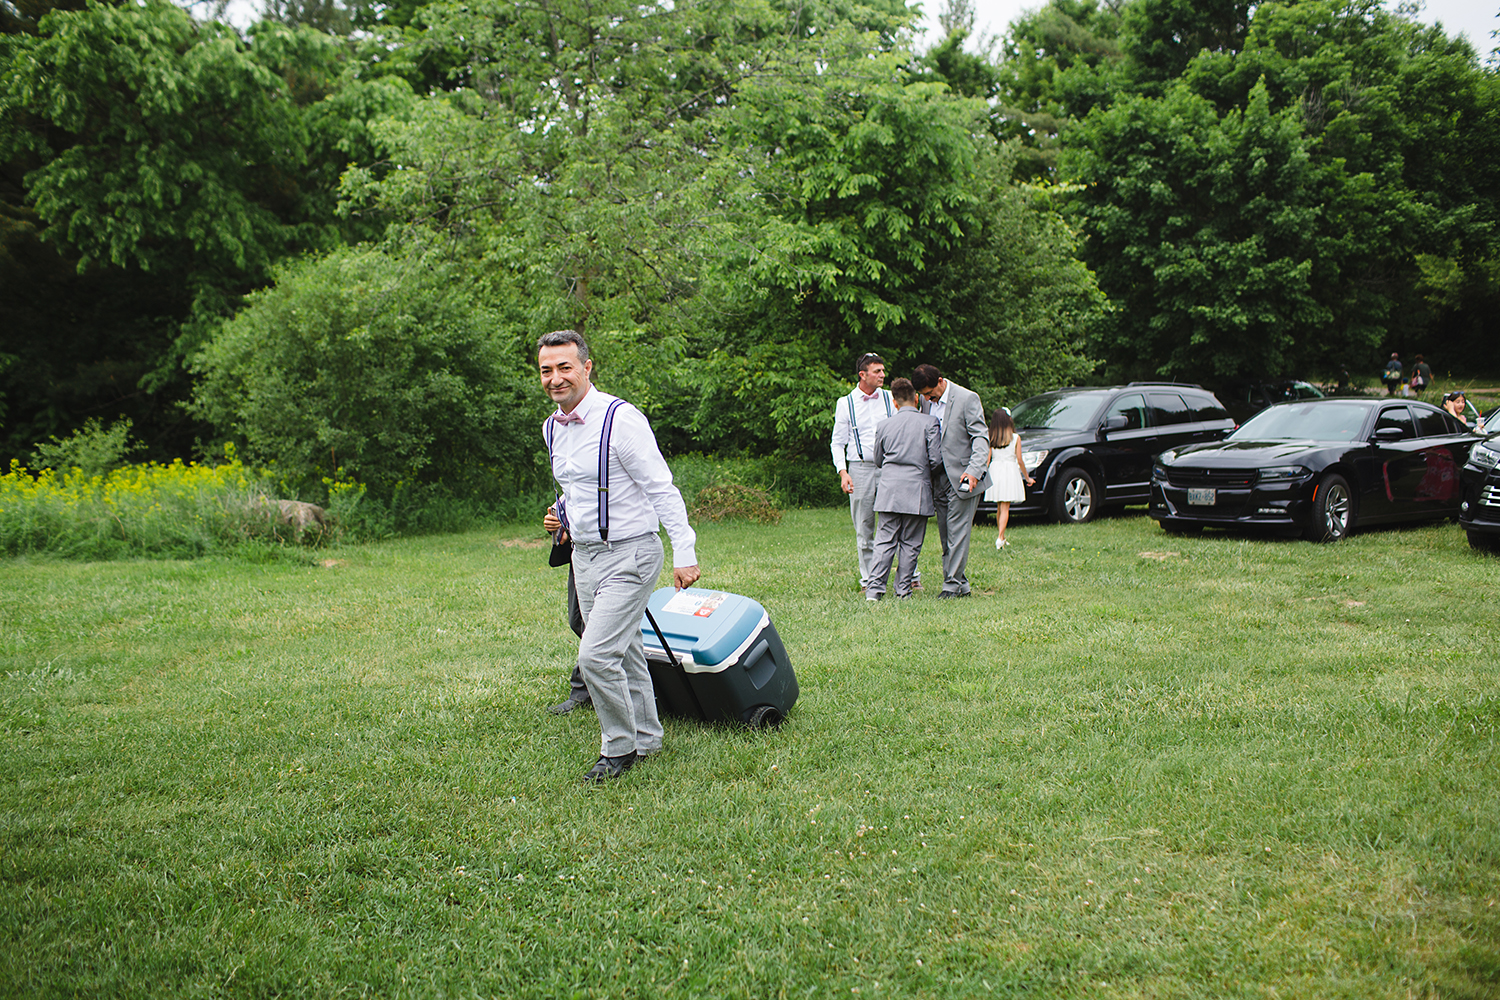 guelph-conservation-area-wedding-03.jpg